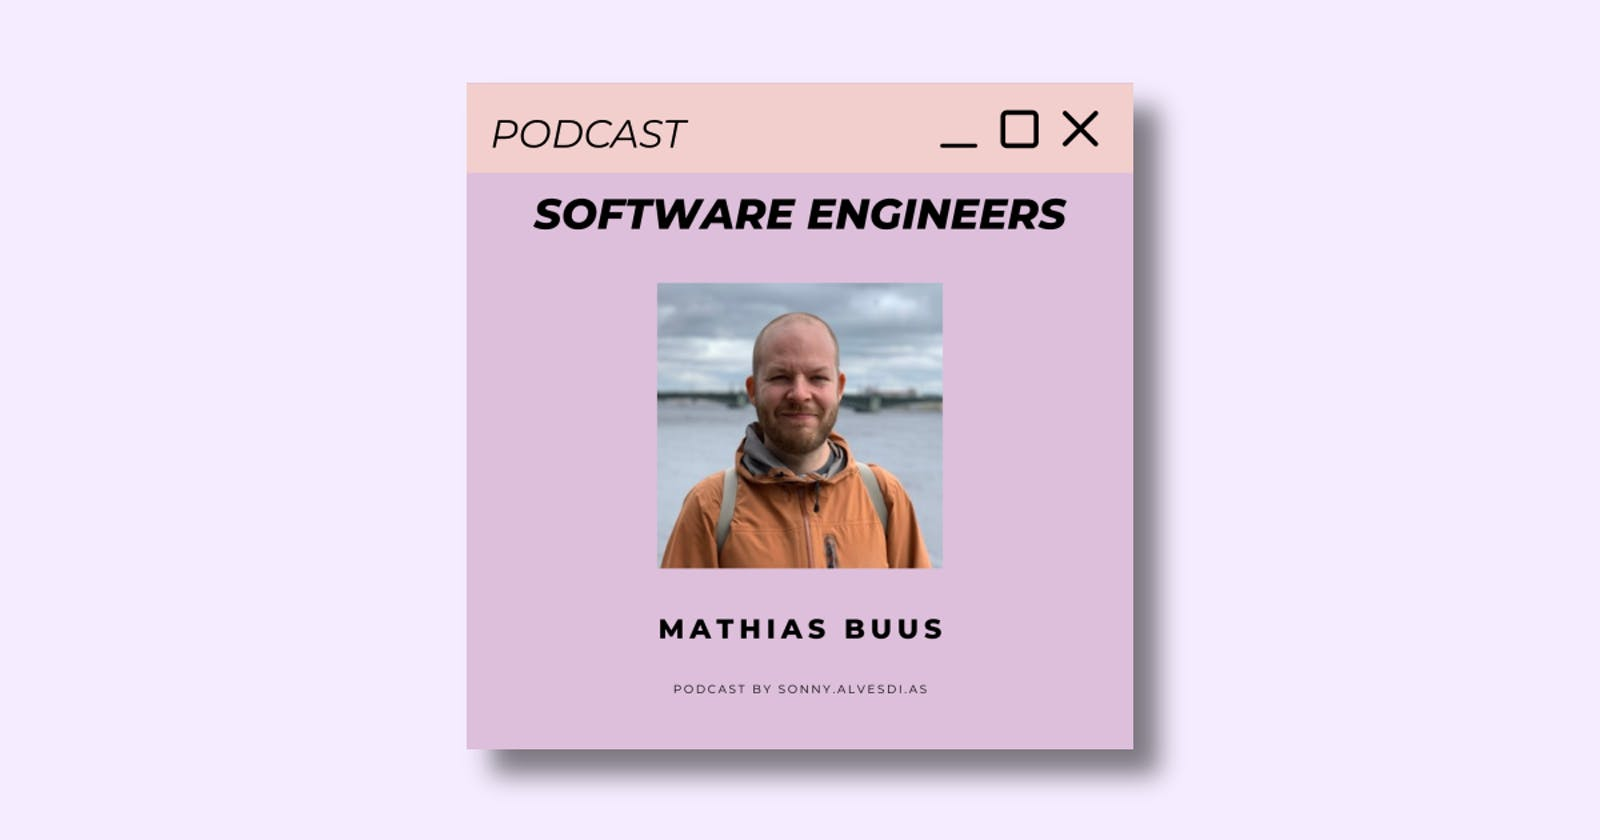 🎙️ Software Engineers Podcast 🎙️ Episode 6 with Mathias Buus